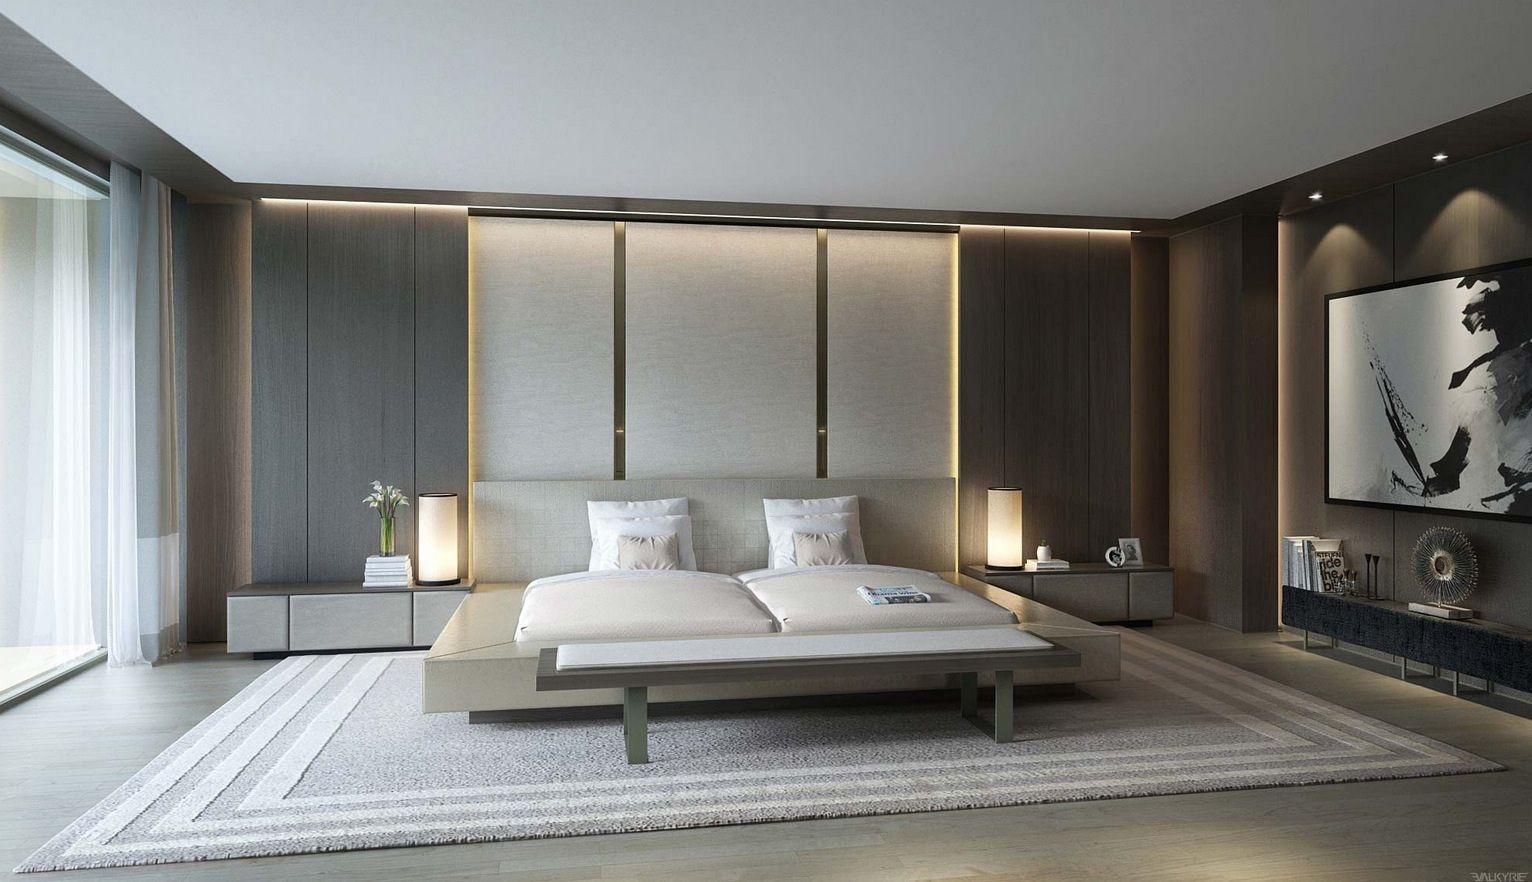 21 Cool Bedrooms For Clean And Simple Design Inspiration Luxurious Bedrooms Contemporary Bedroom Bedroom Design